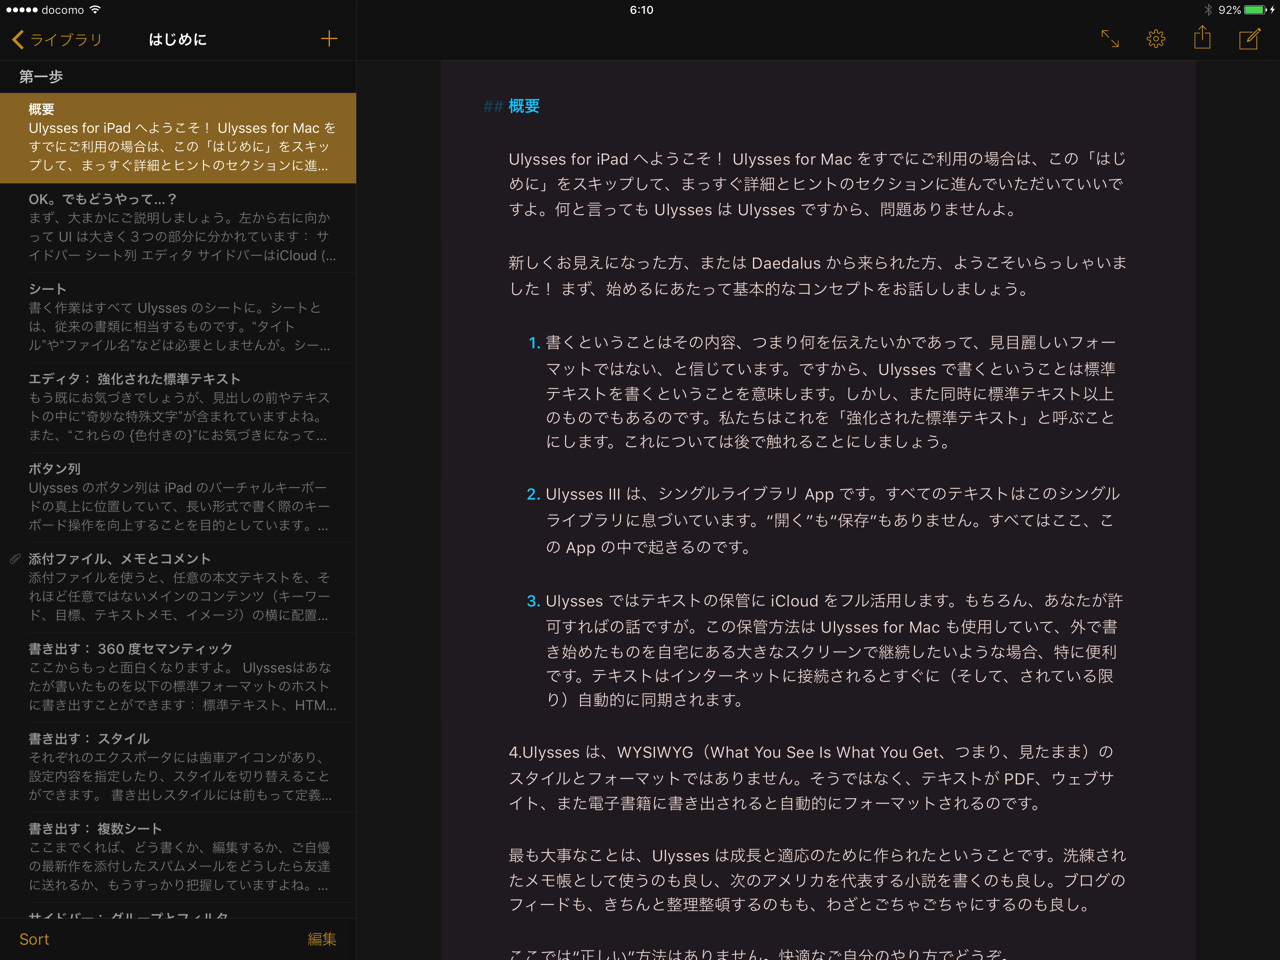 Ulysses for ipad4